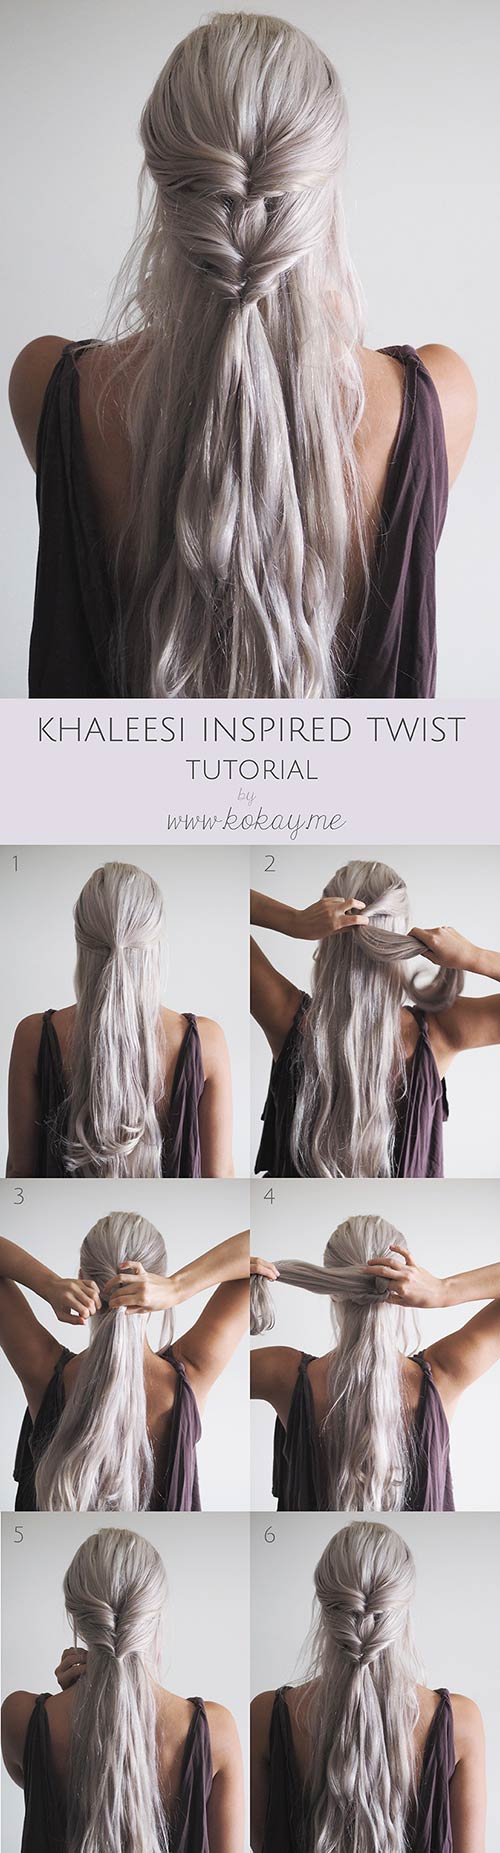 Khaleesi-Inspired-Twist Awesome Hairstyles For Girls With Long Hair